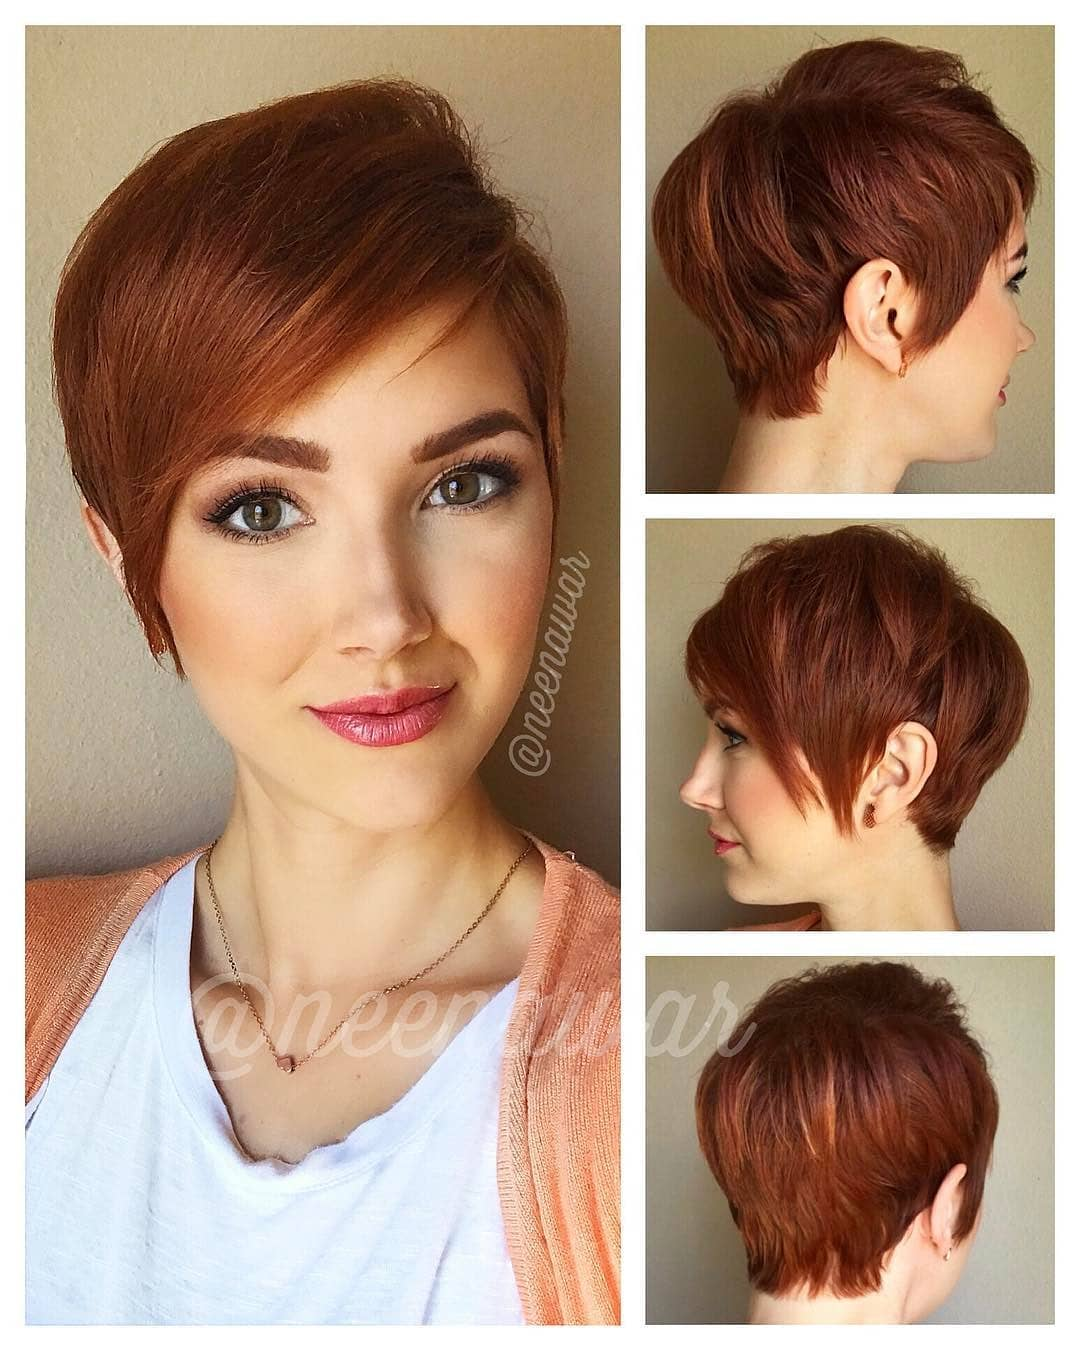 Stylish Pixie Haircut, 2018 Best Kurze Frisuren für Frauen